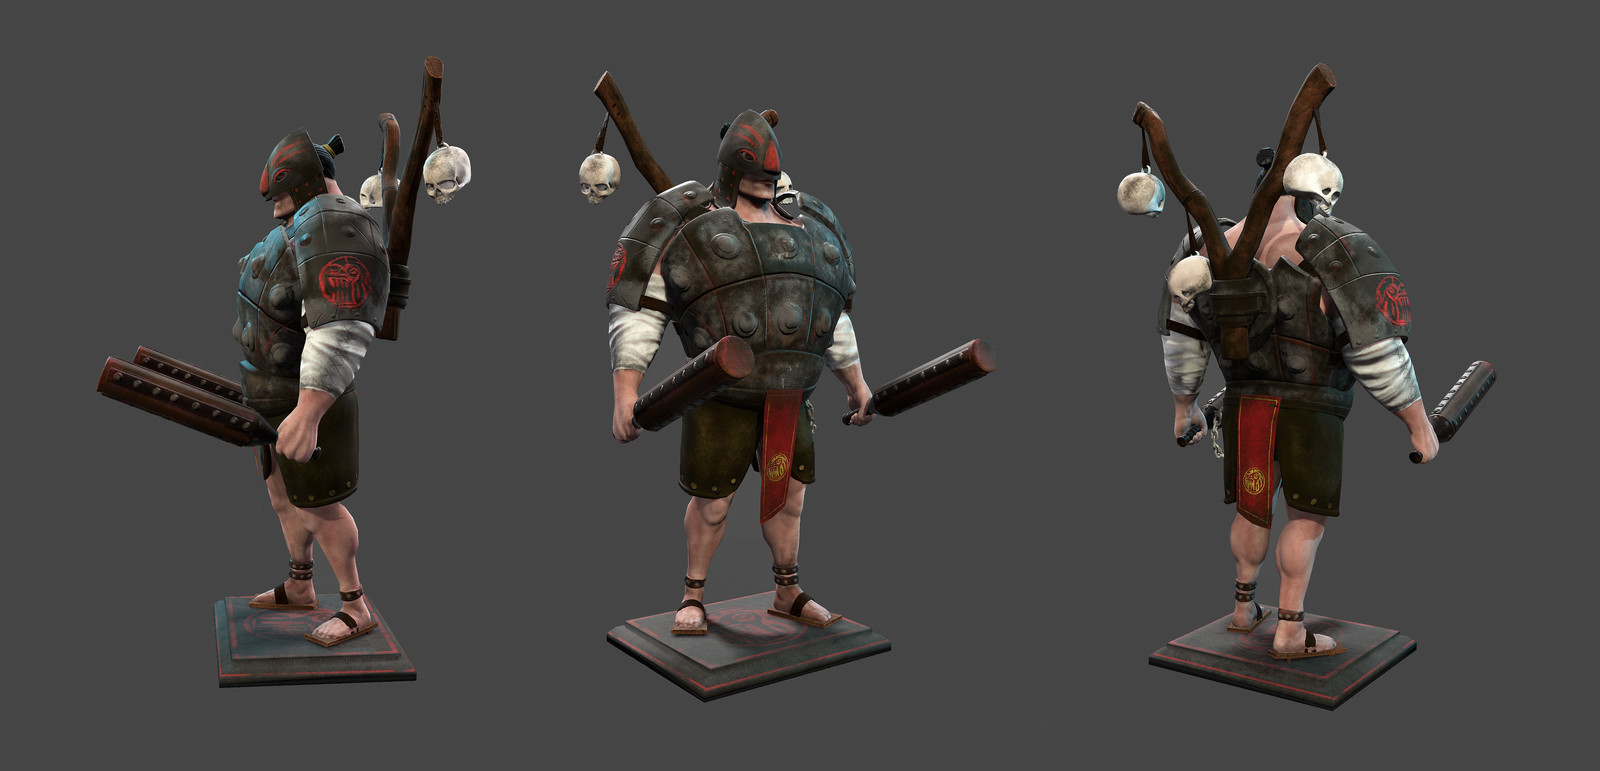 Rhin, Ancient Civilizations: Lost & Found: Game Character Art Challenge